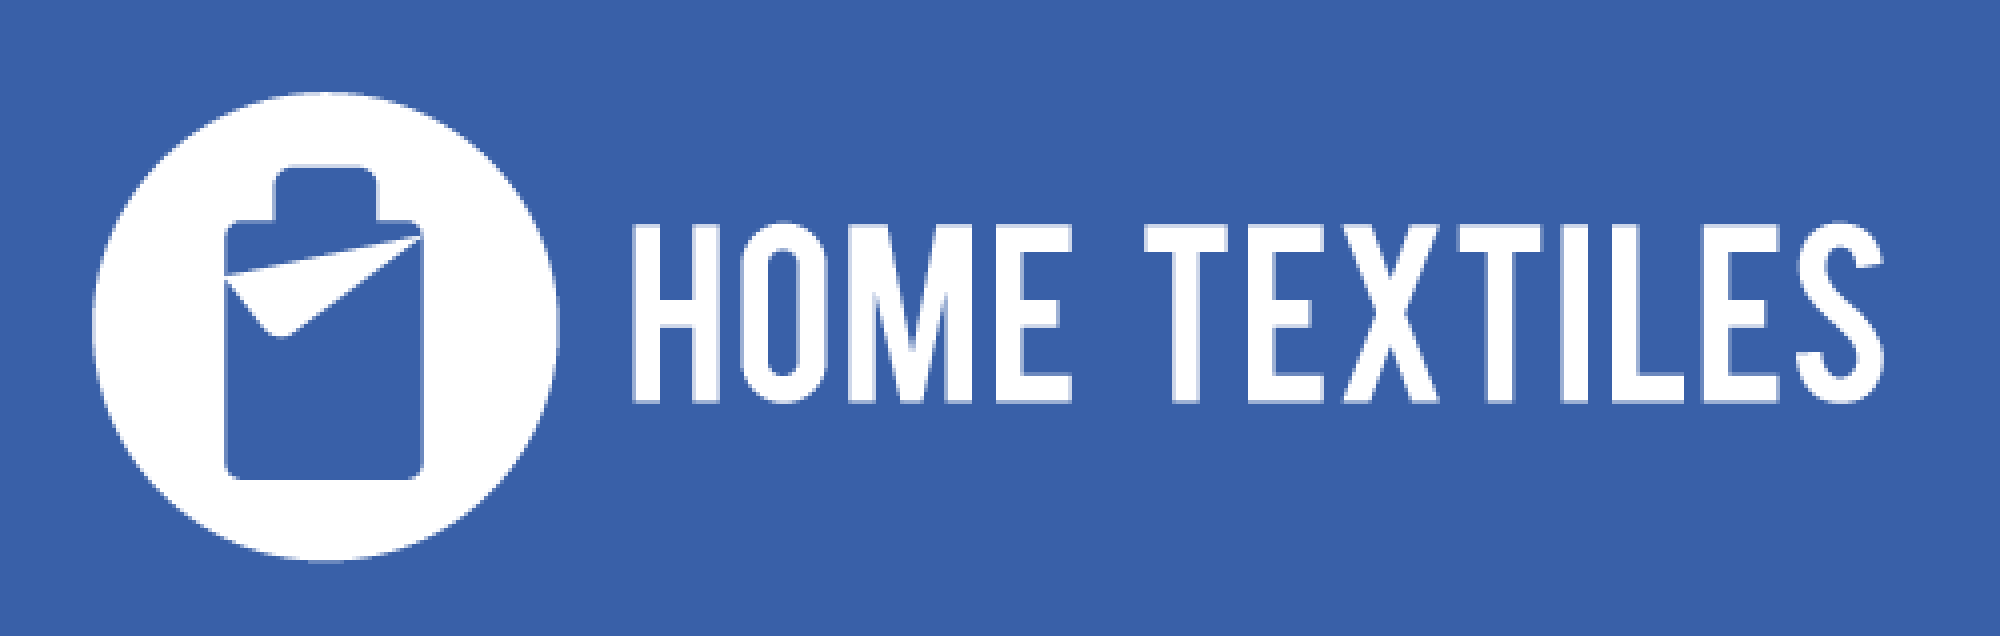 HomeTextiles-button.png